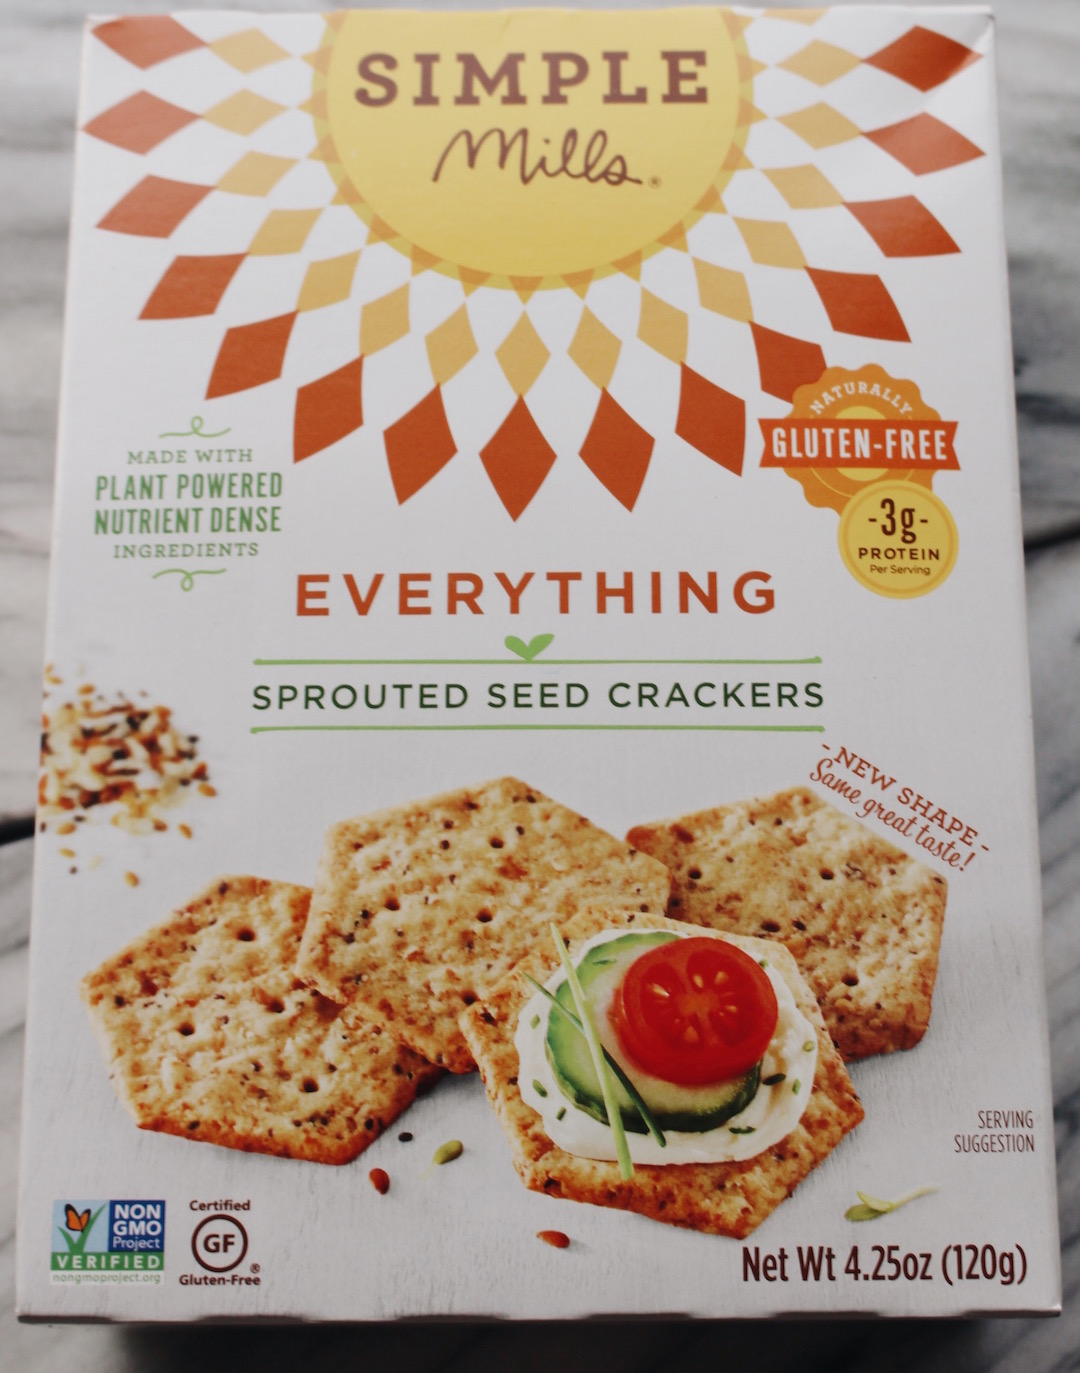 Crackers - These Simple Mills almond flour crackers are so tasty and totally good for you. These are high in Omega-3's, Vitamin E, protein, and Maganese. Make yourself a snack plate at work by packing these with an apple and your favorite cheese. Who says you can't get a little fancy at work?